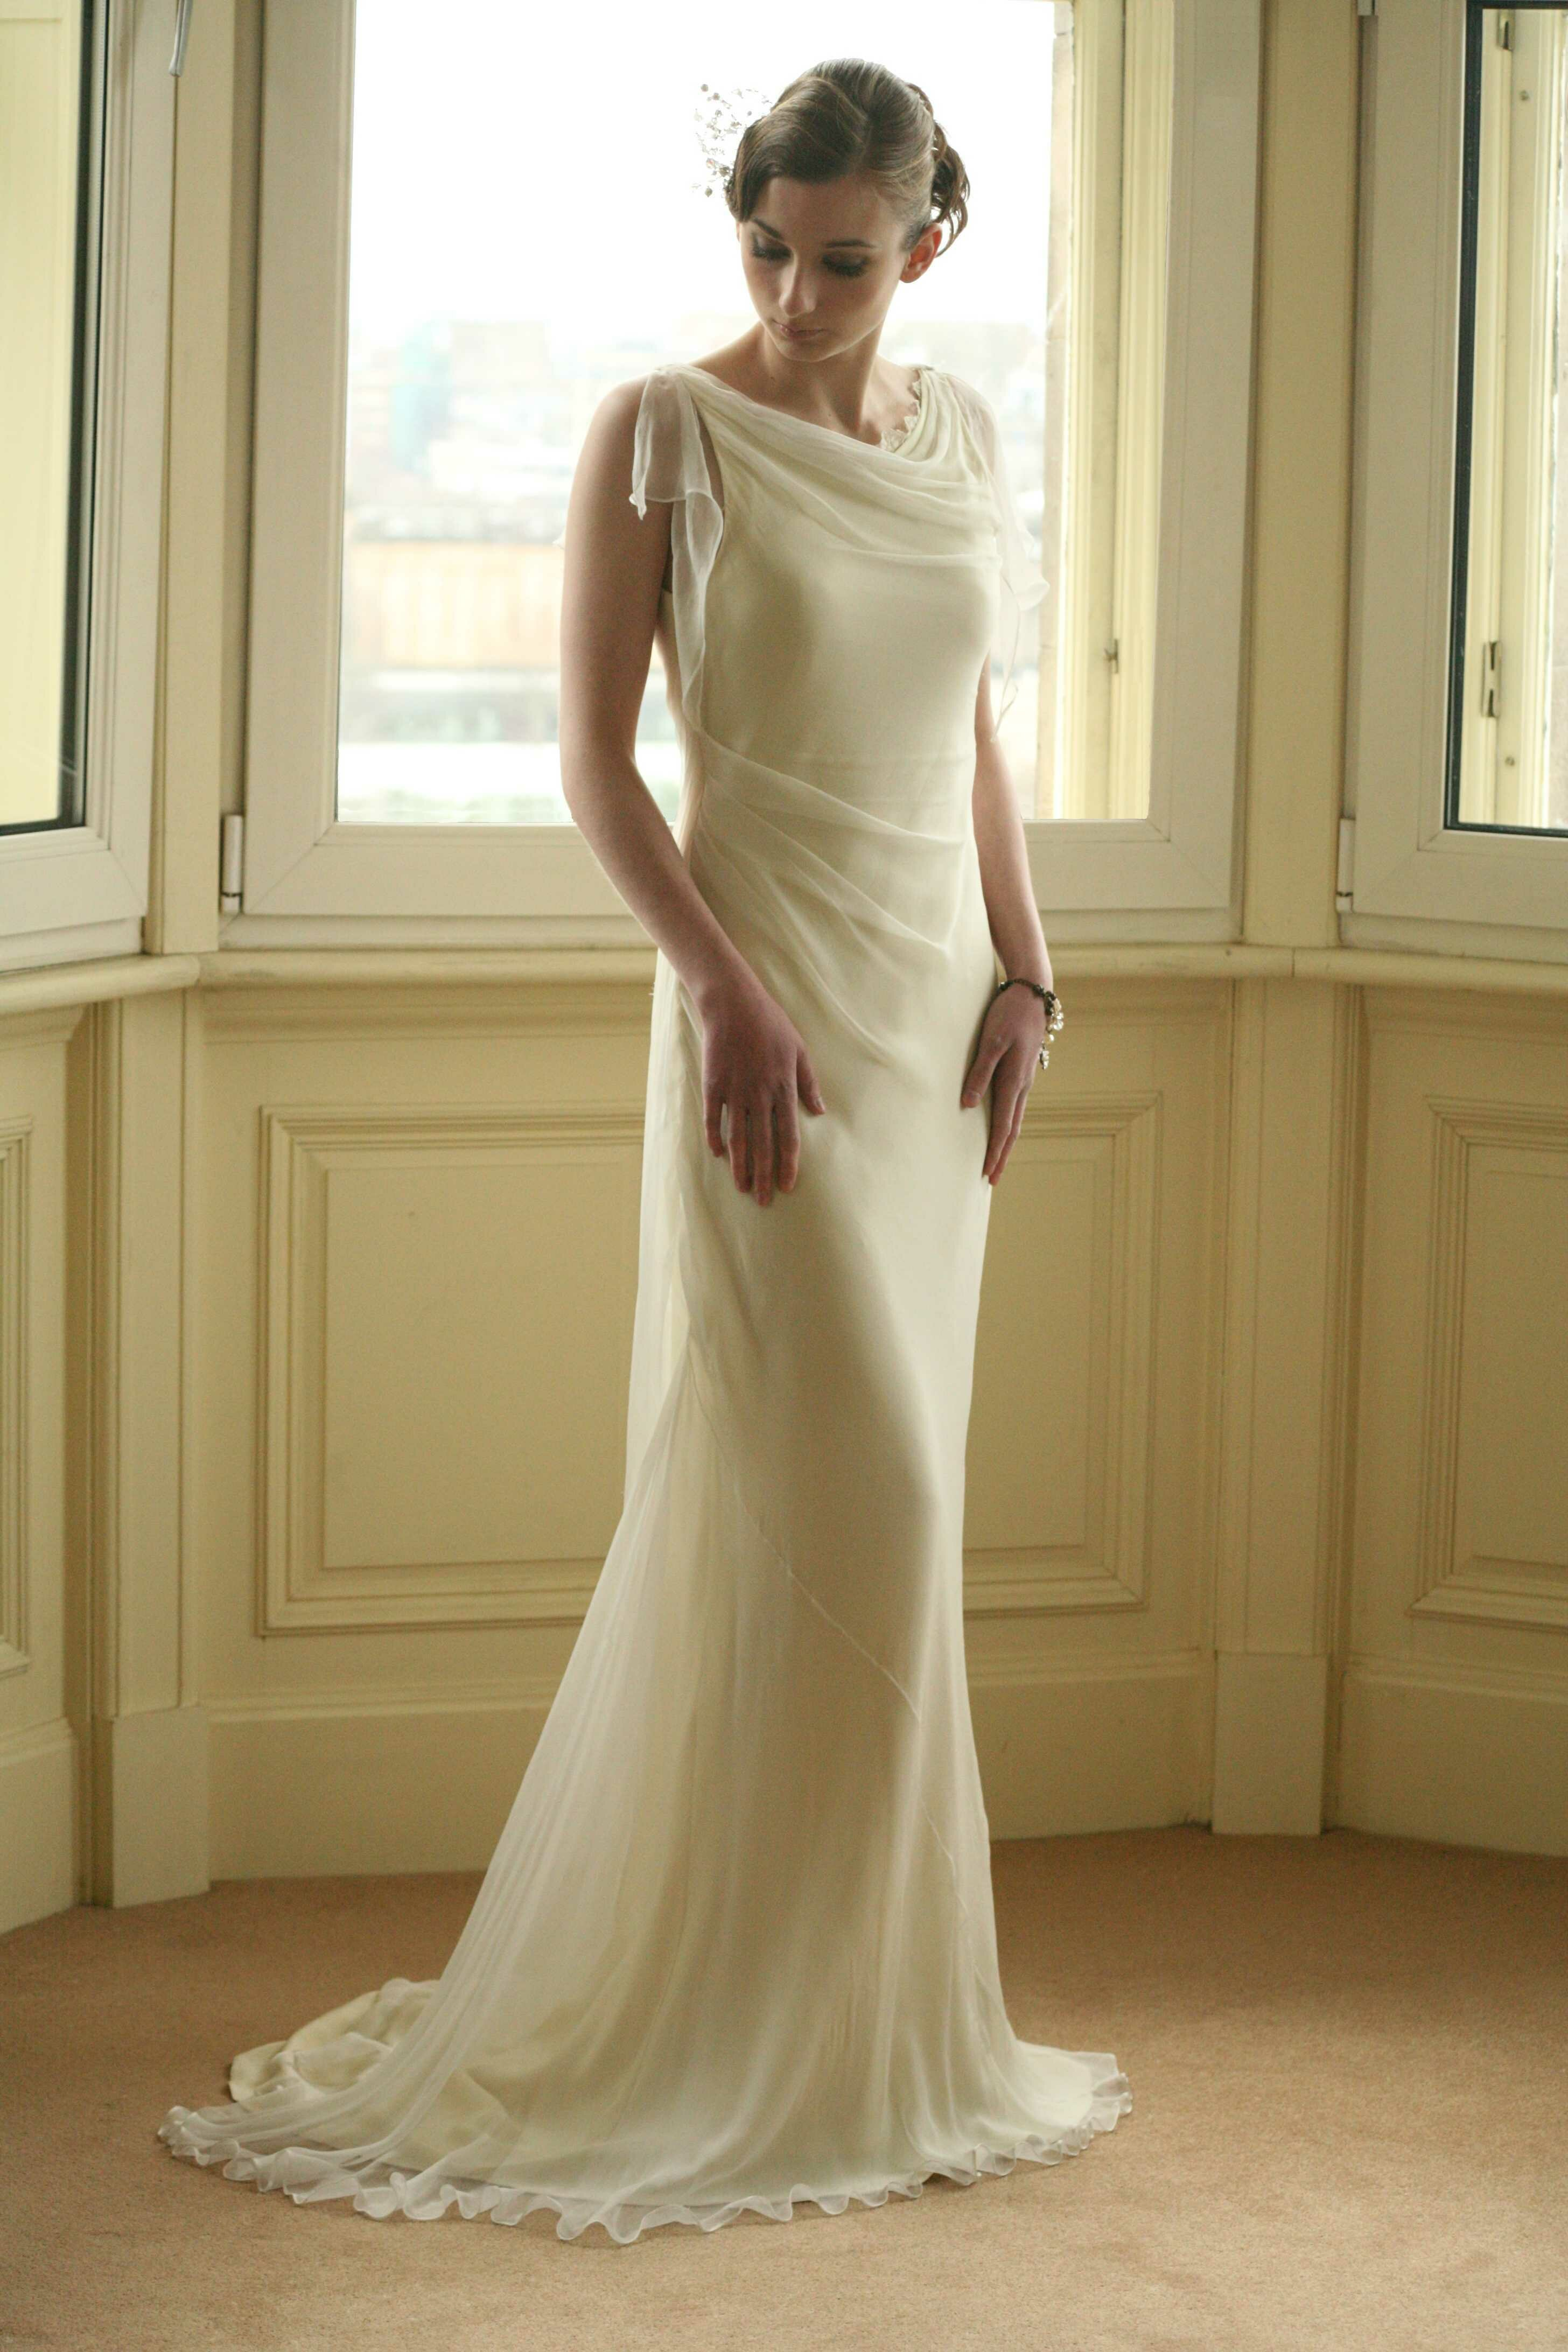 Summer wedding dresses 2013 Photo - 8